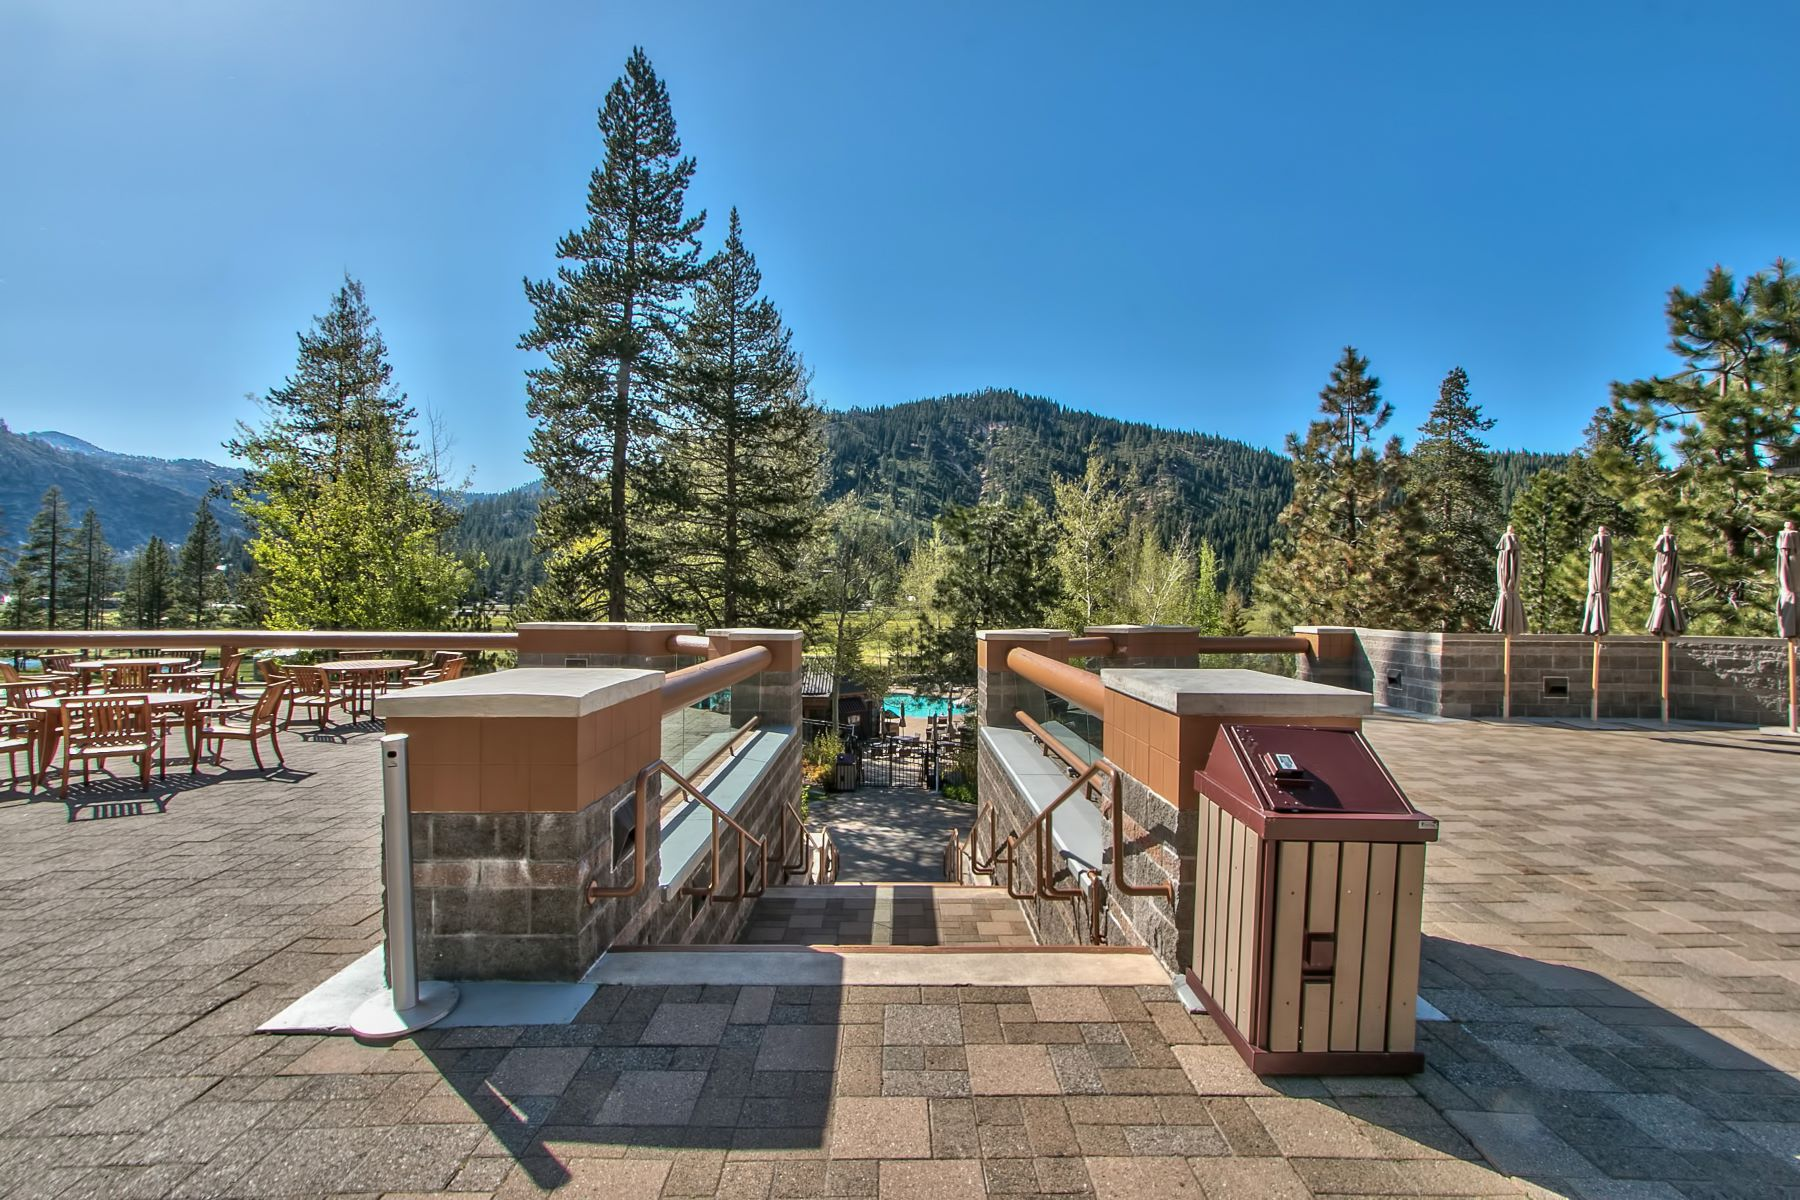 Additional photo for property listing at 400 Squaw Creek Road #901/903 400 Squaw Creek Road #901/903 Olympic Valley, California 96146 United States